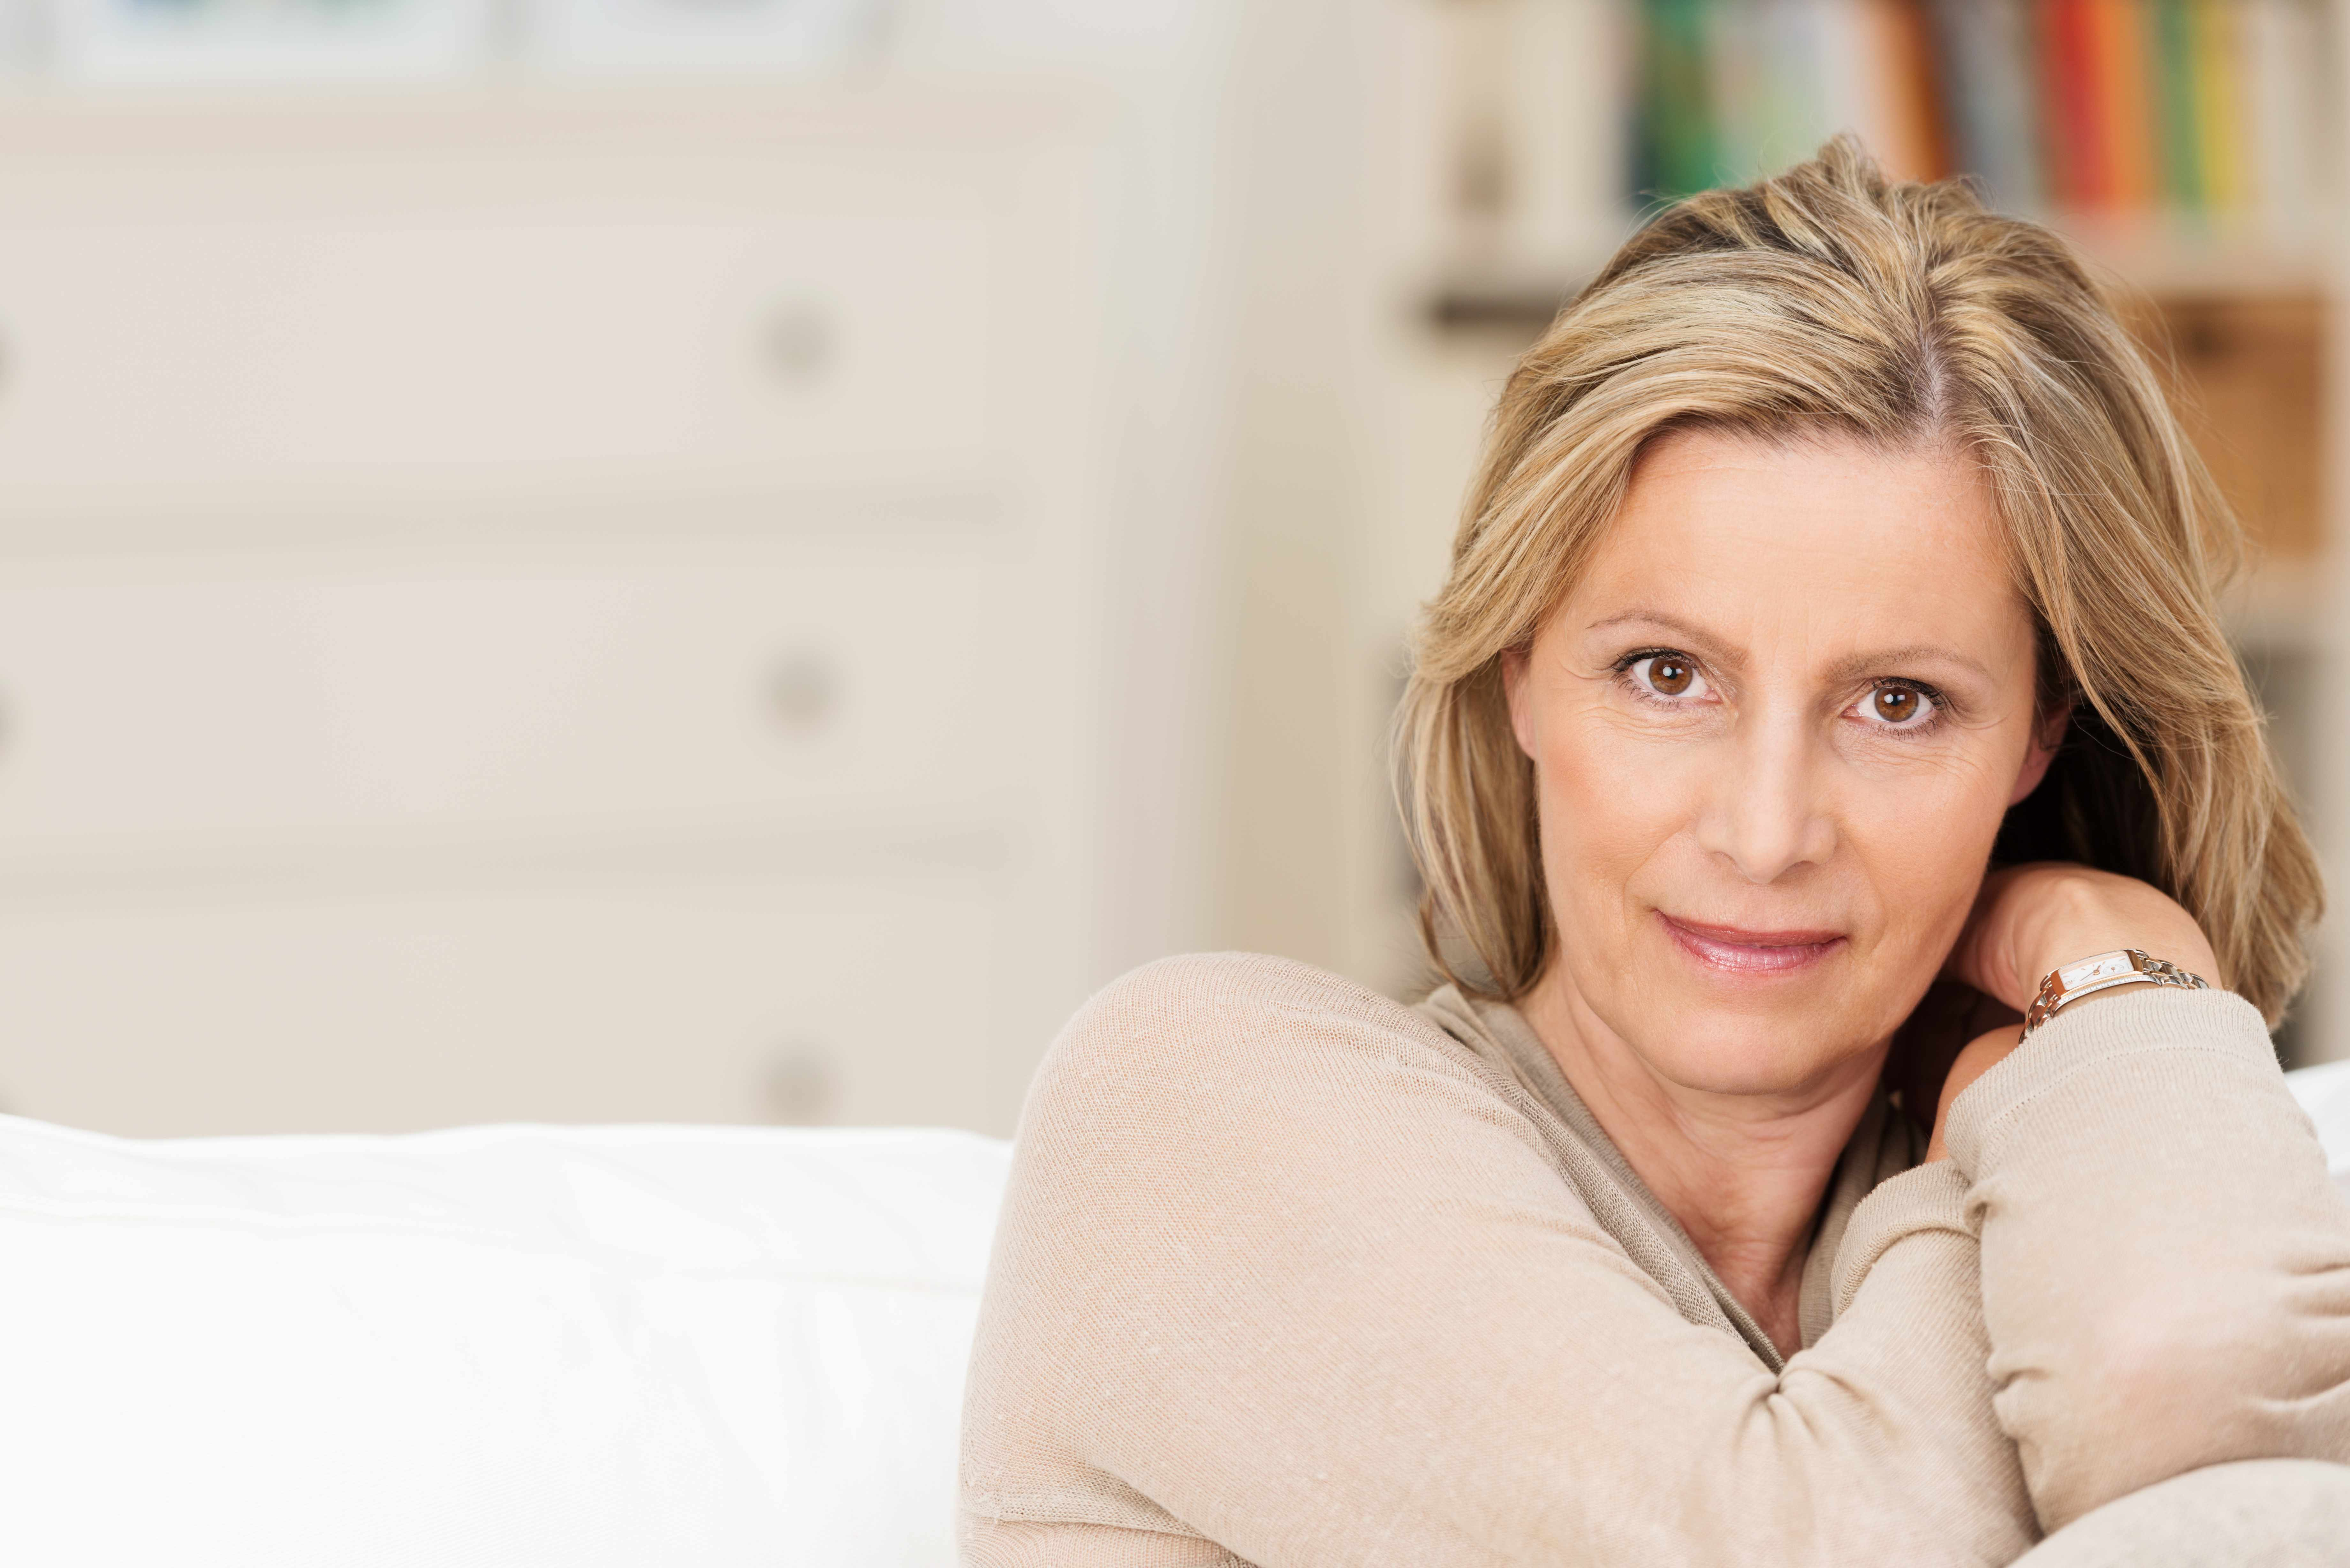 close-up of a serious-looking middle-aged woman sitting on a couch